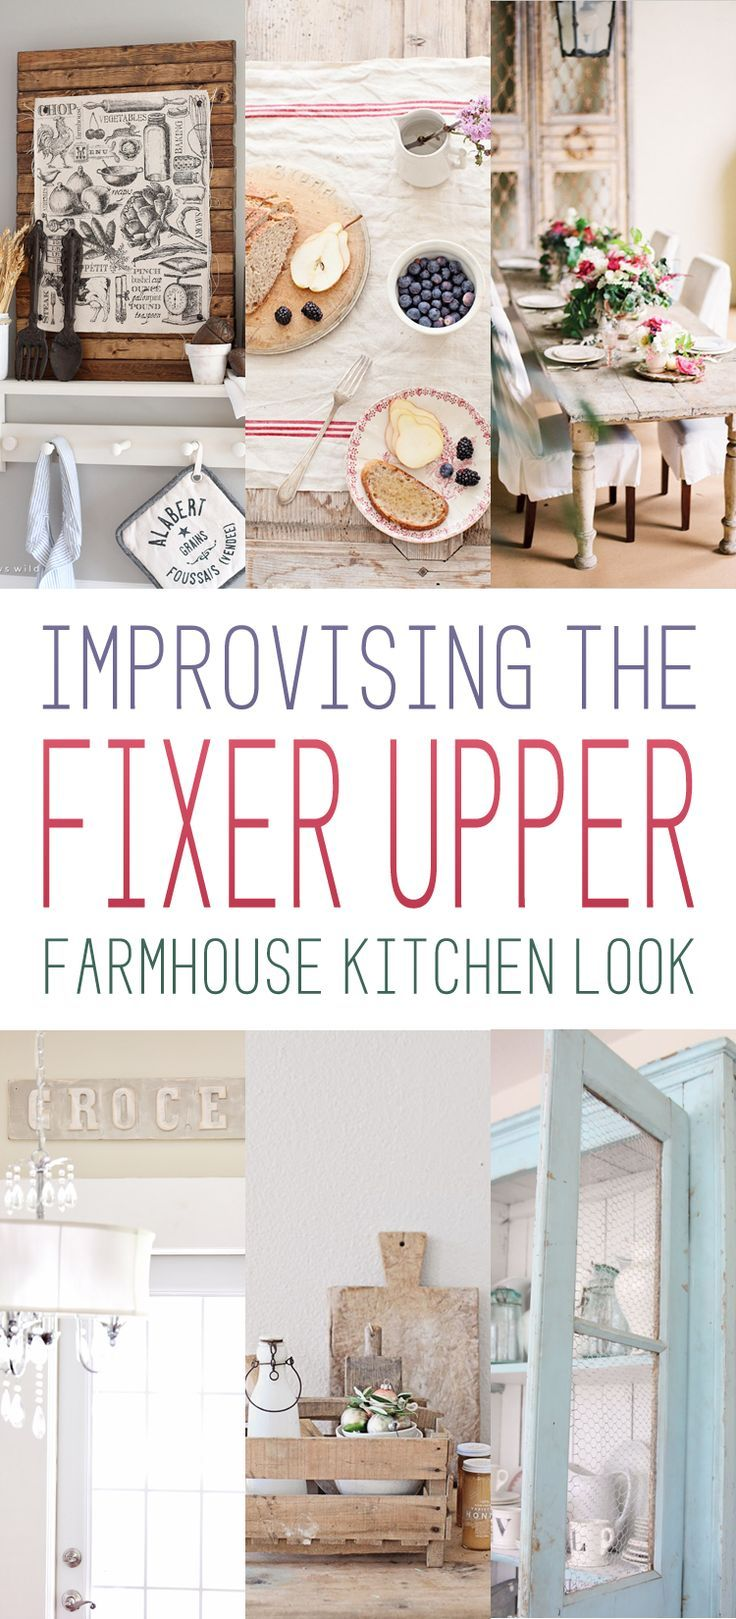 the fixer upper farmhouse kitchen look farm house pinterest bauernk chen landh user und. Black Bedroom Furniture Sets. Home Design Ideas